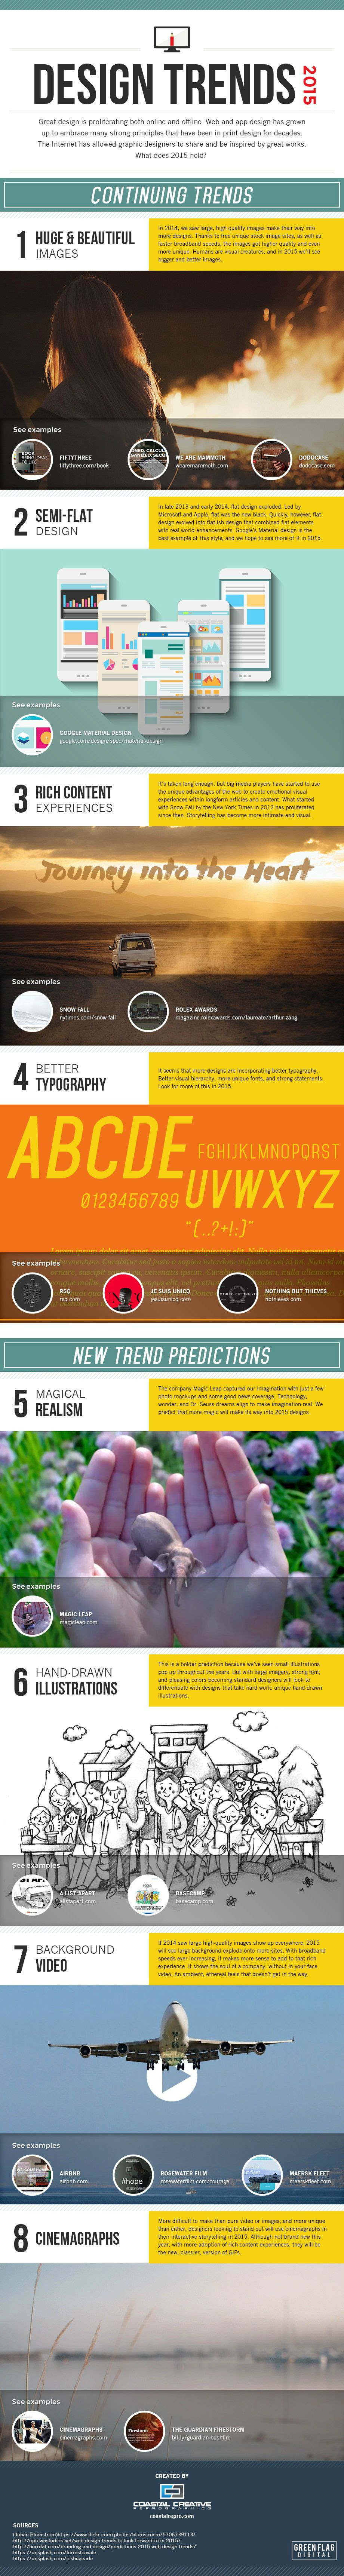 8 Current Web Design Trends Every Digital Marketer Should Know